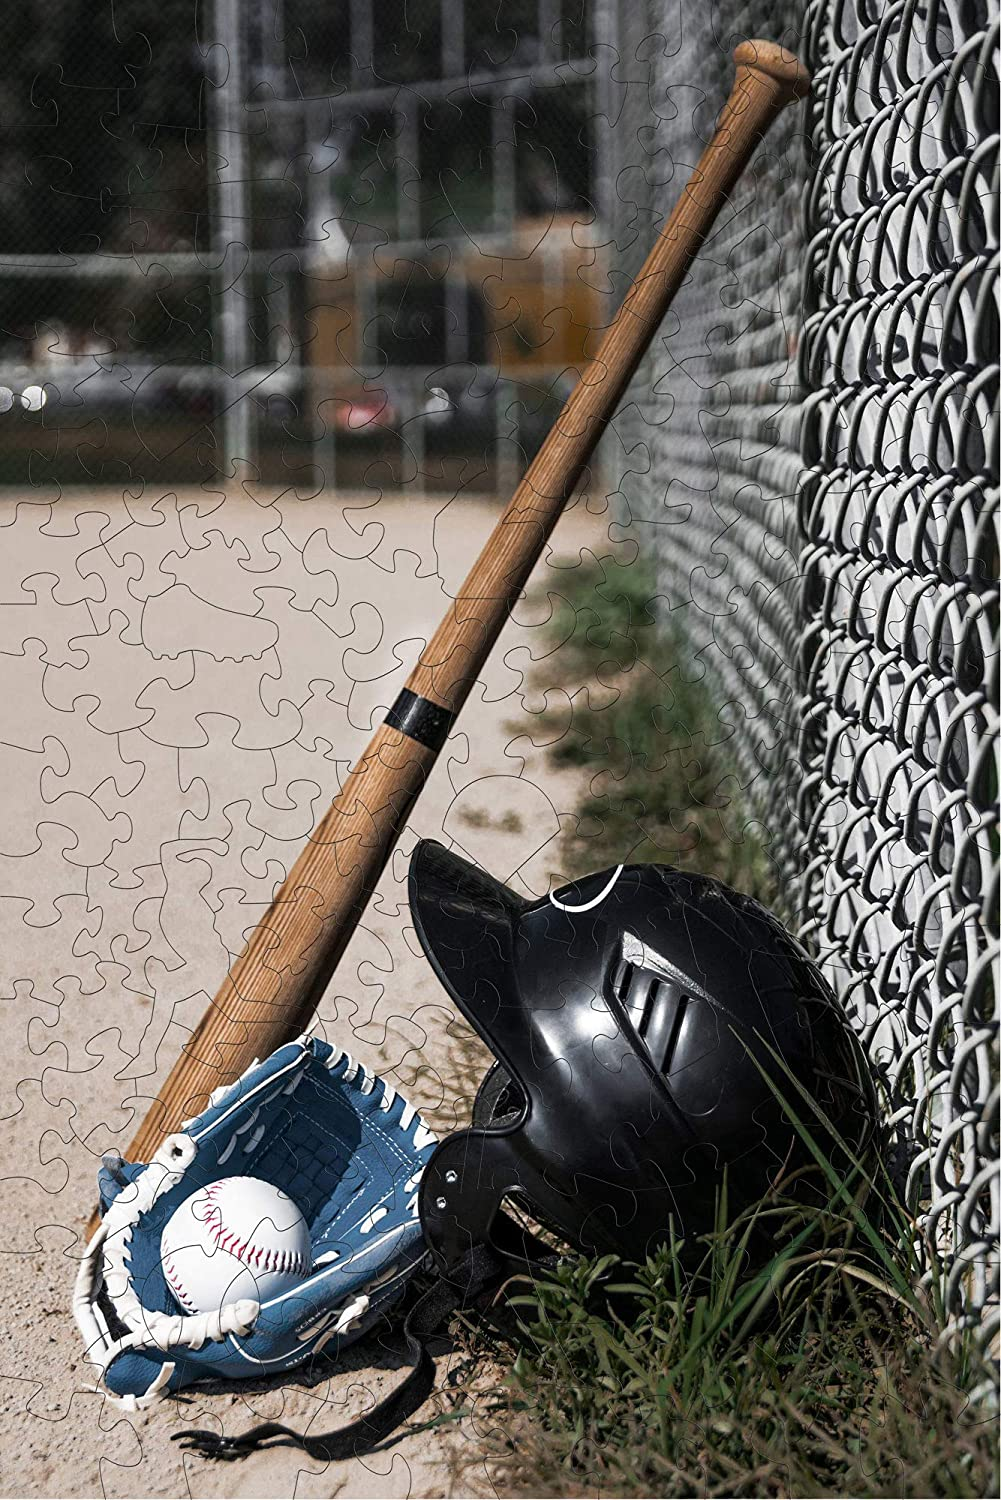 Wooden Jigsaw Puzzles - Baseball - 193 Irregular Pieces - Colorful Puzzle for a Real Baseball Lover – BasisWood